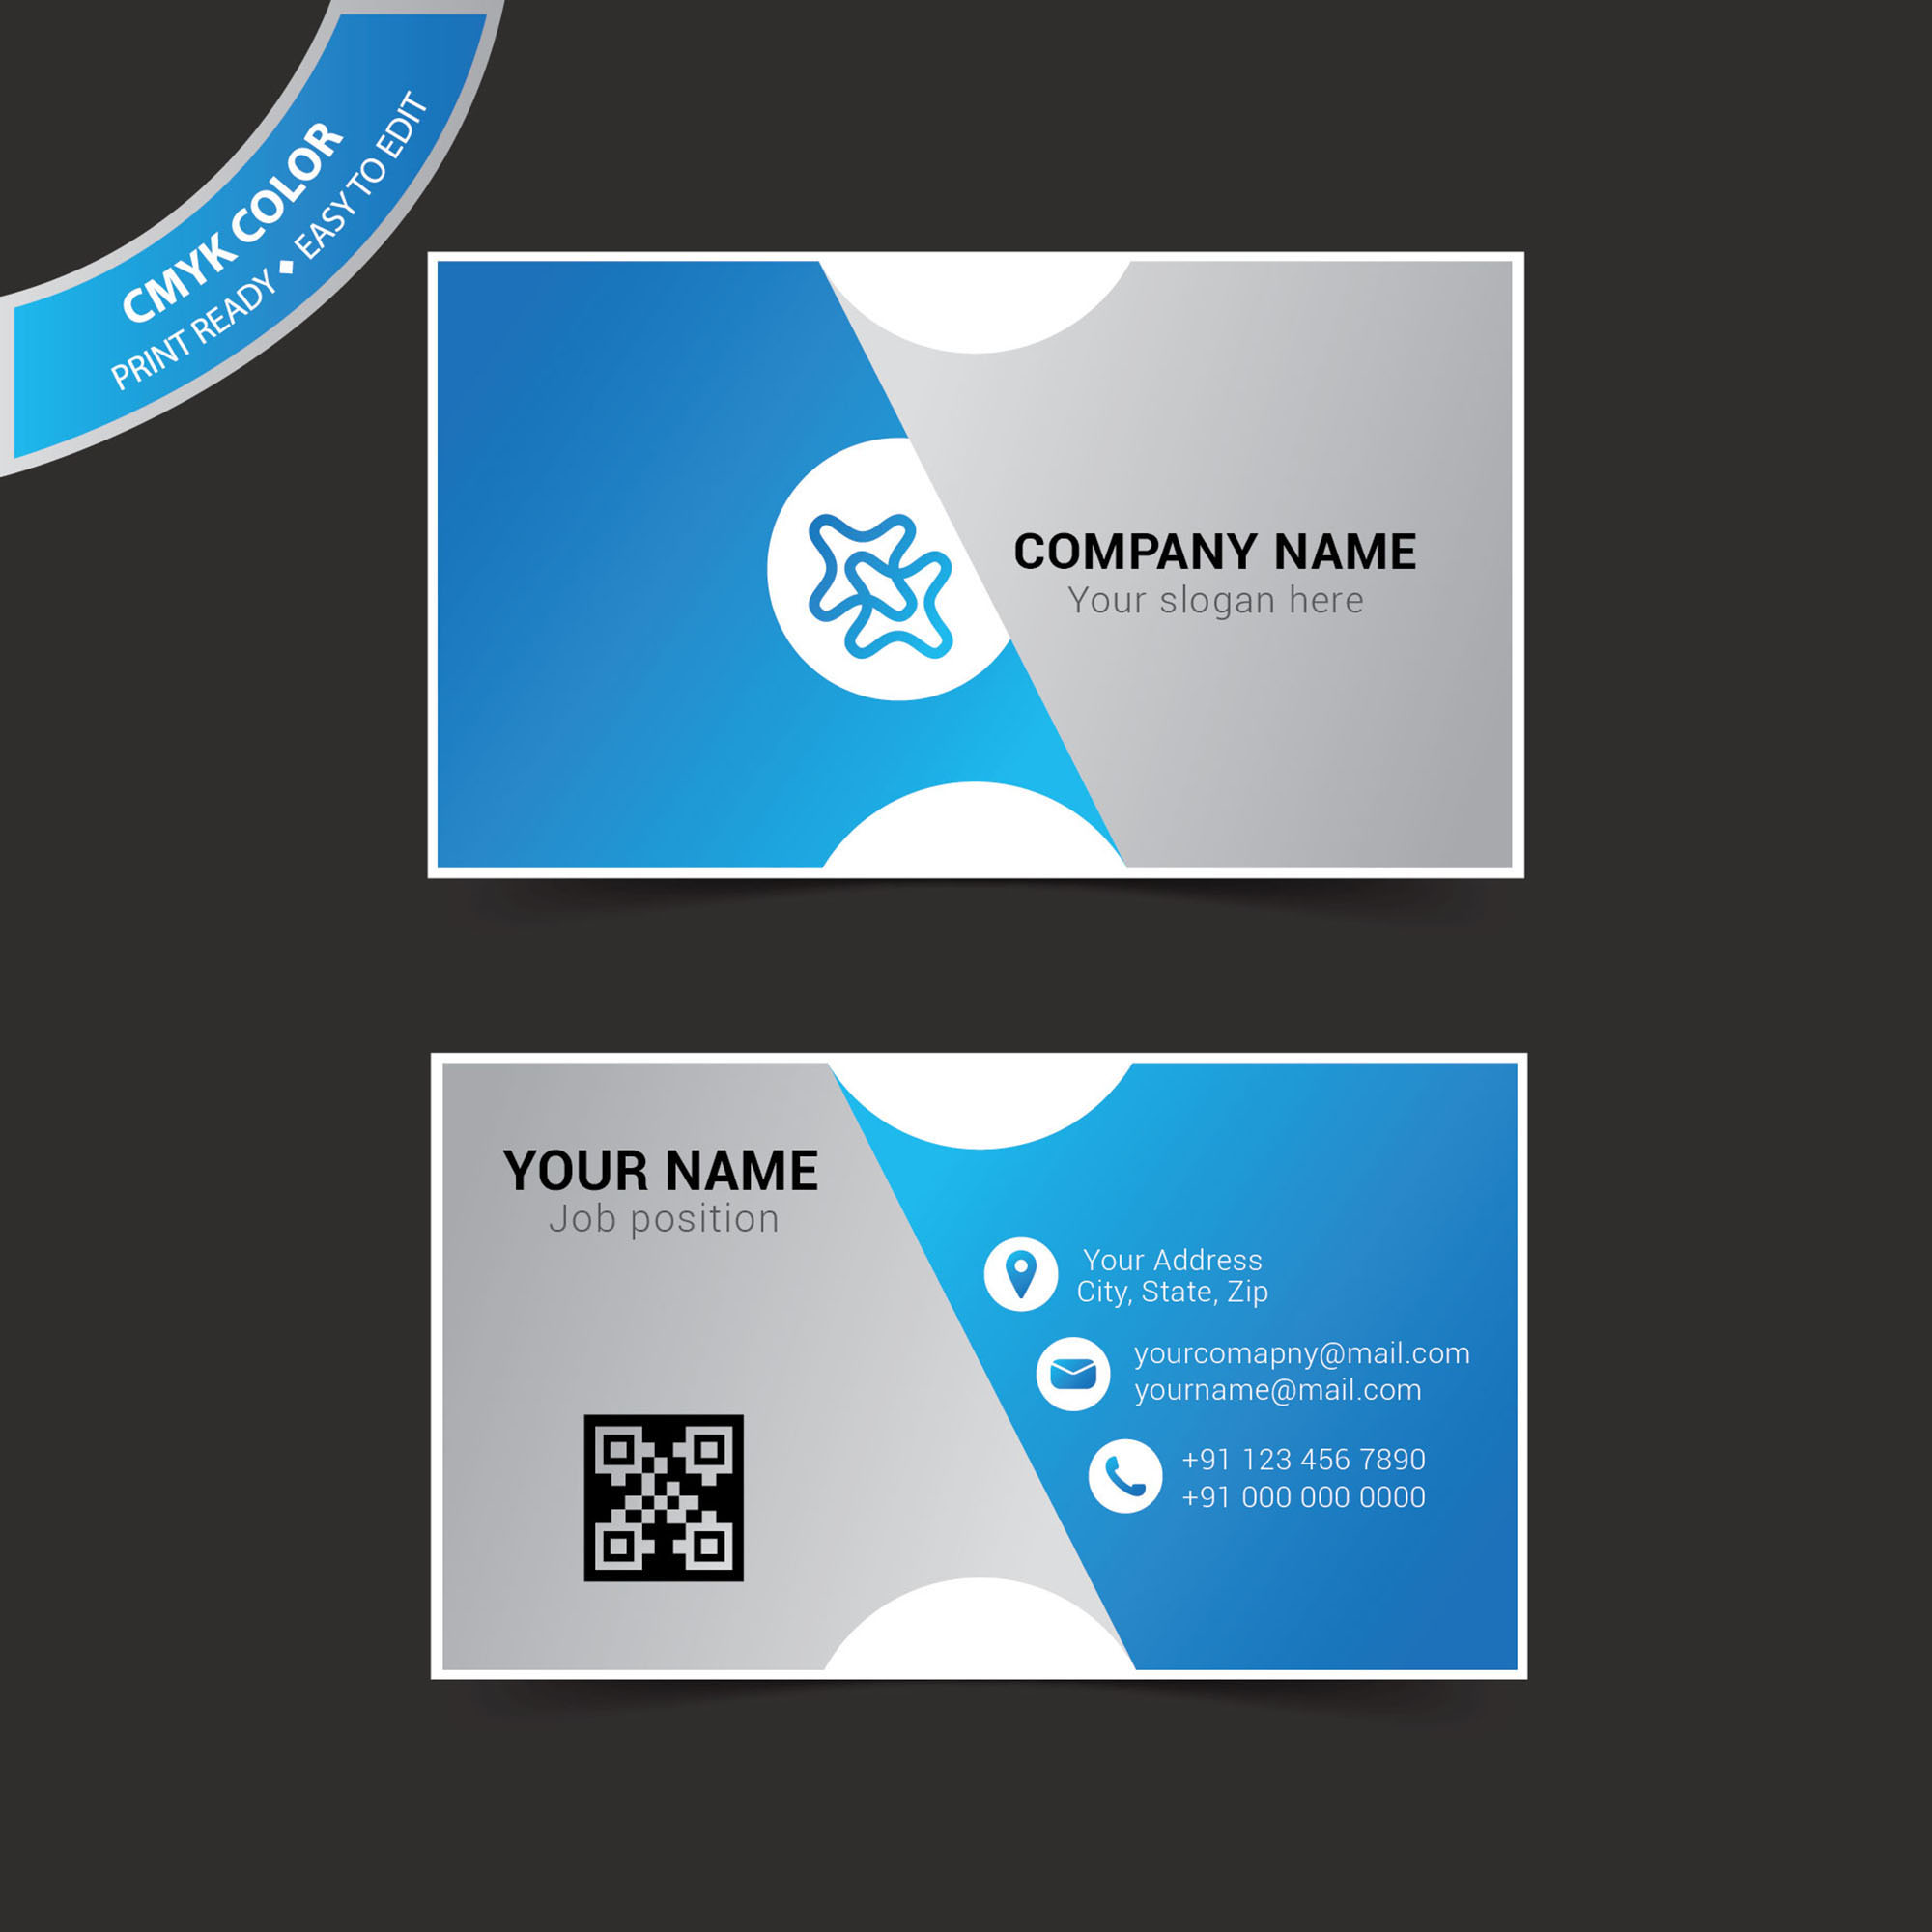 Business card template illustrator free vector wisxi abstract business card design business creative graphic layout template friedricerecipe Gallery